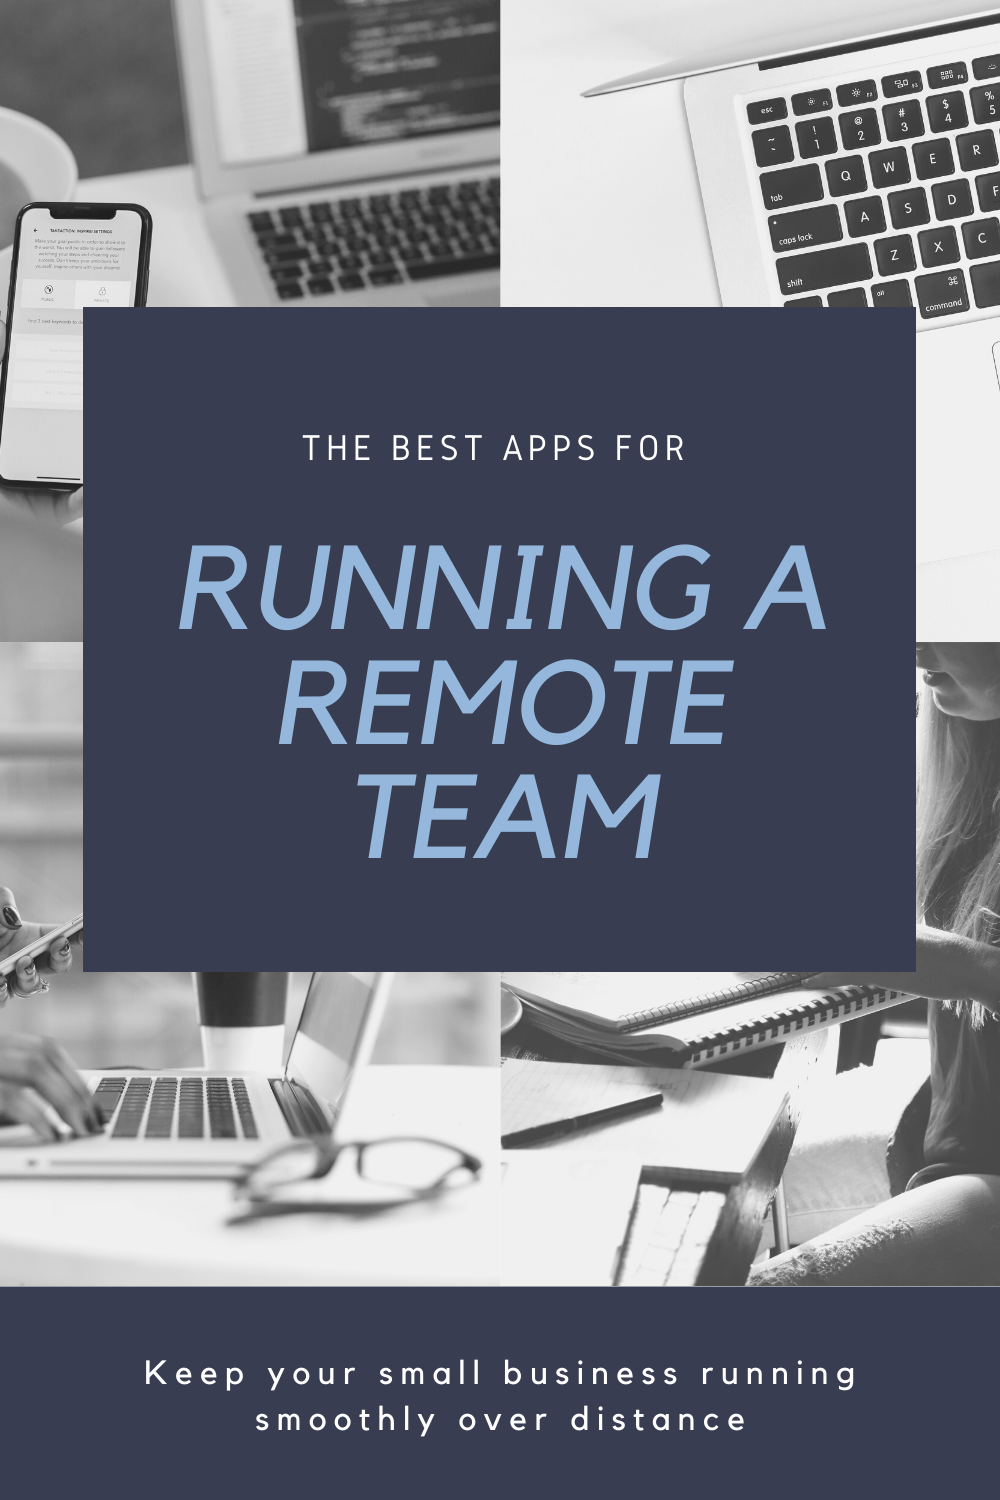 Are you a small business owner? You can run a remote team